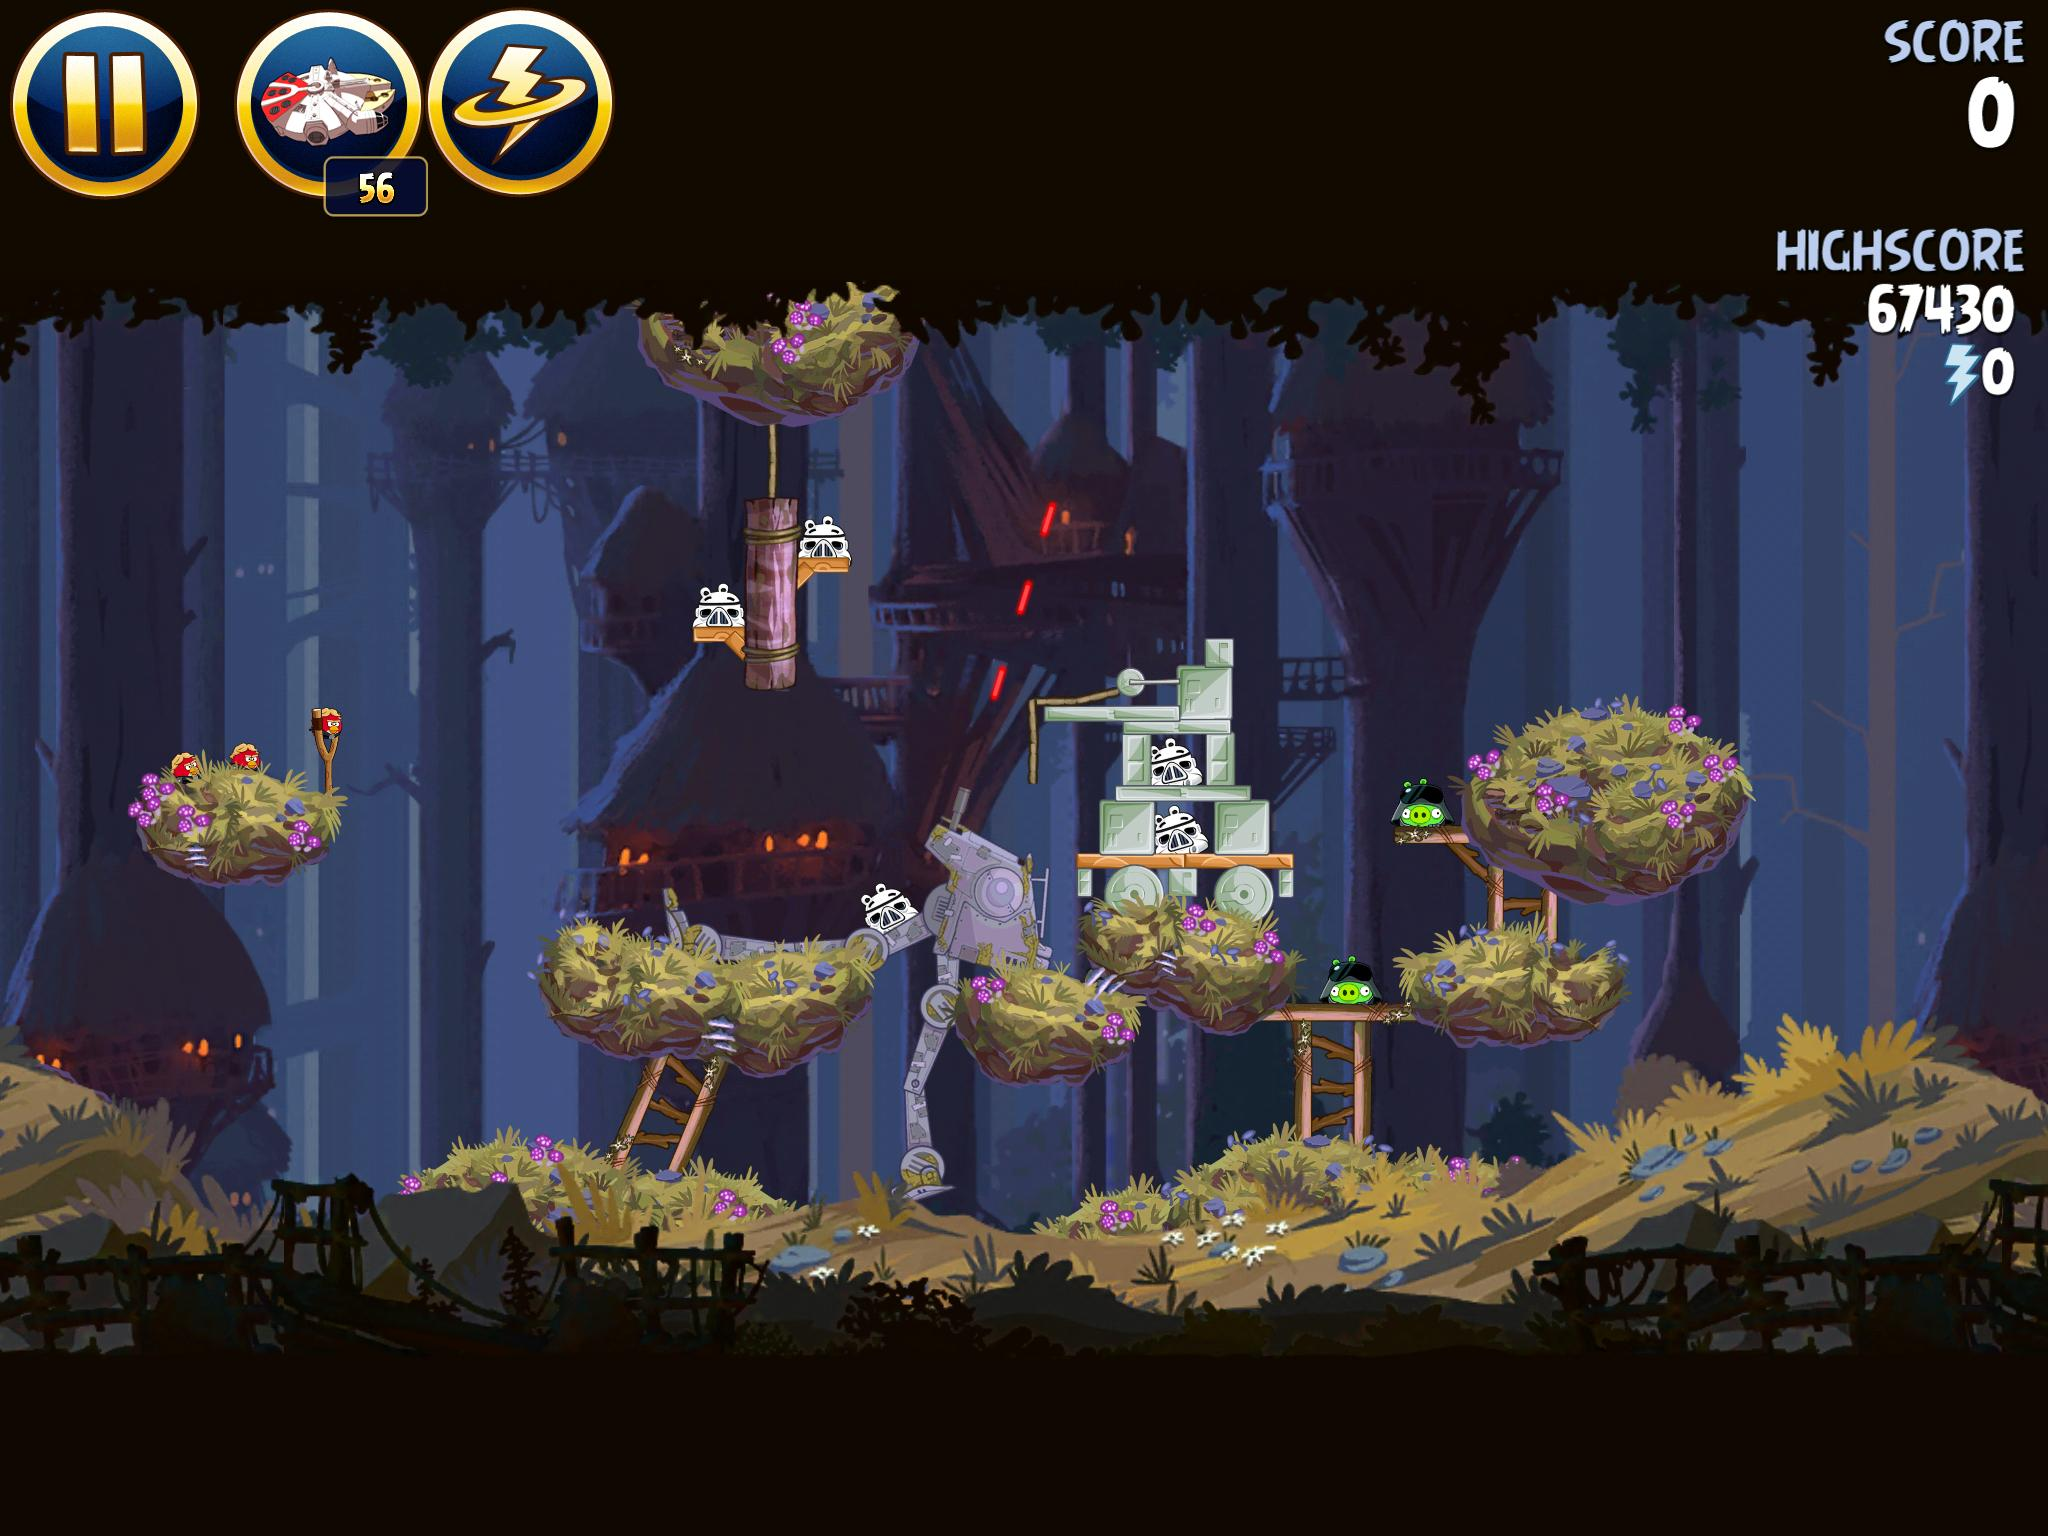 Moon of Endor 5-11 (Angry Birds Star Wars)